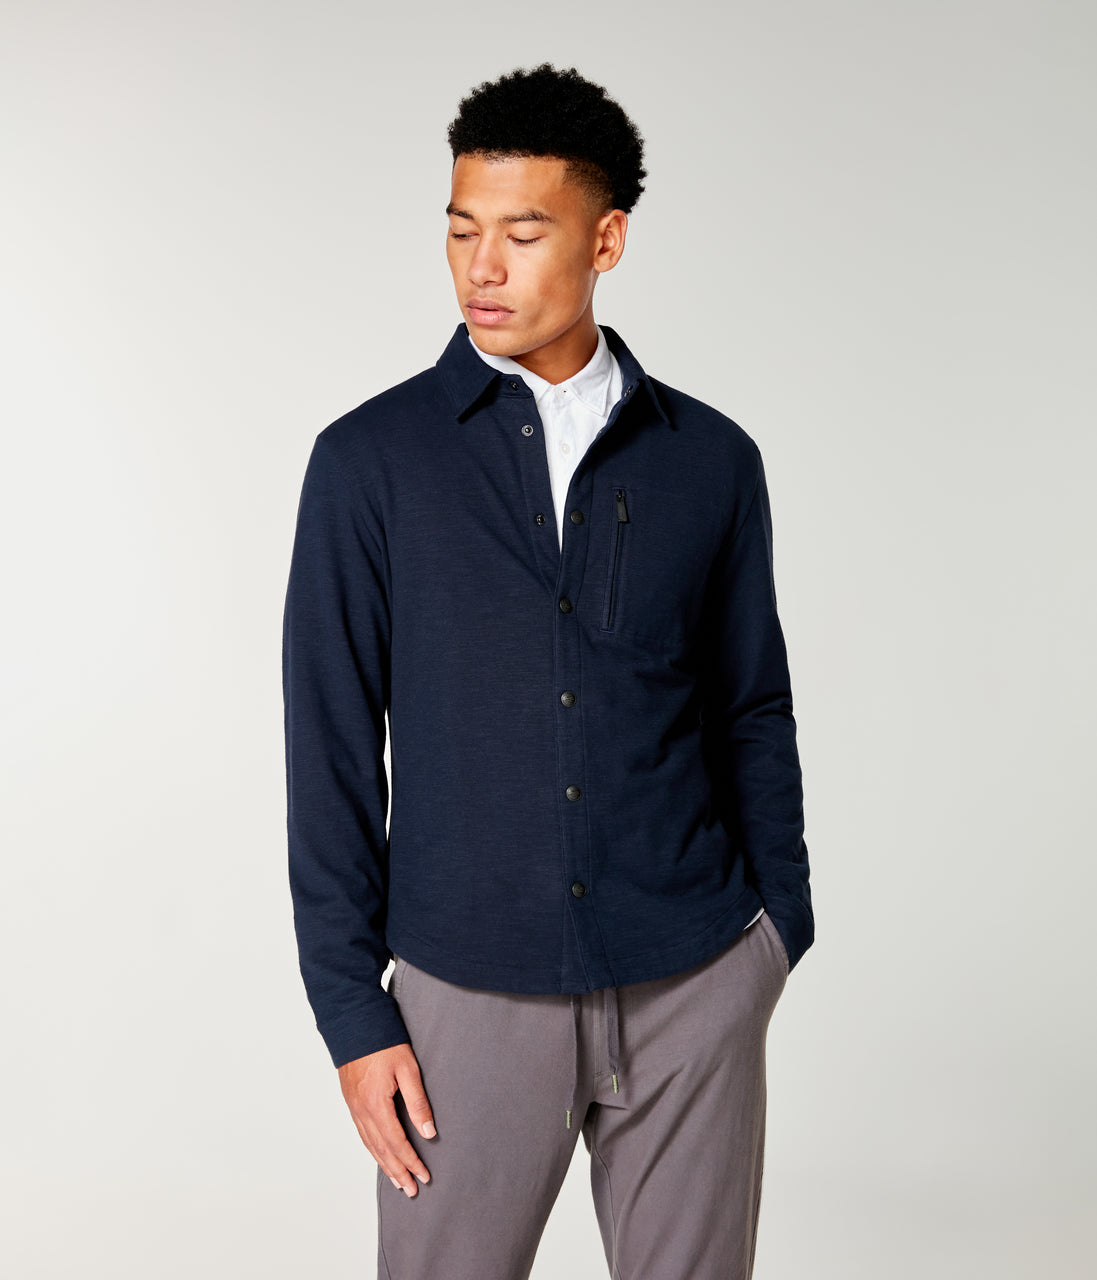 Soft-Slub SFO Shirt Jacket - Sky Captain - Good Man Brand - Soft-Slub SFO Shirt Jacket - Sky Captain